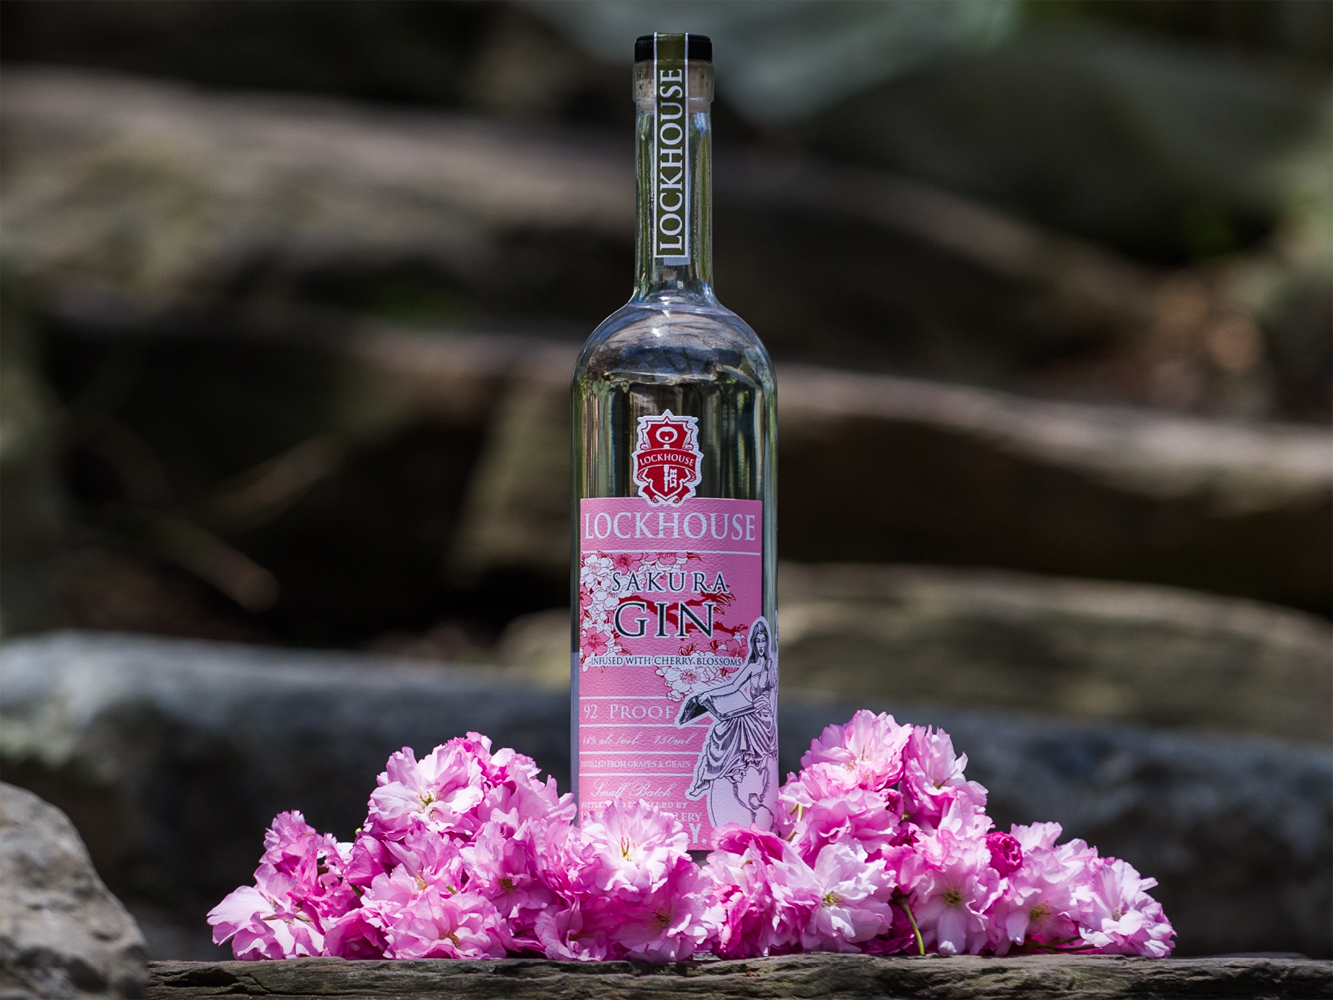 A bottle of Lockhouse Distillery's seasonal Sakura Gin